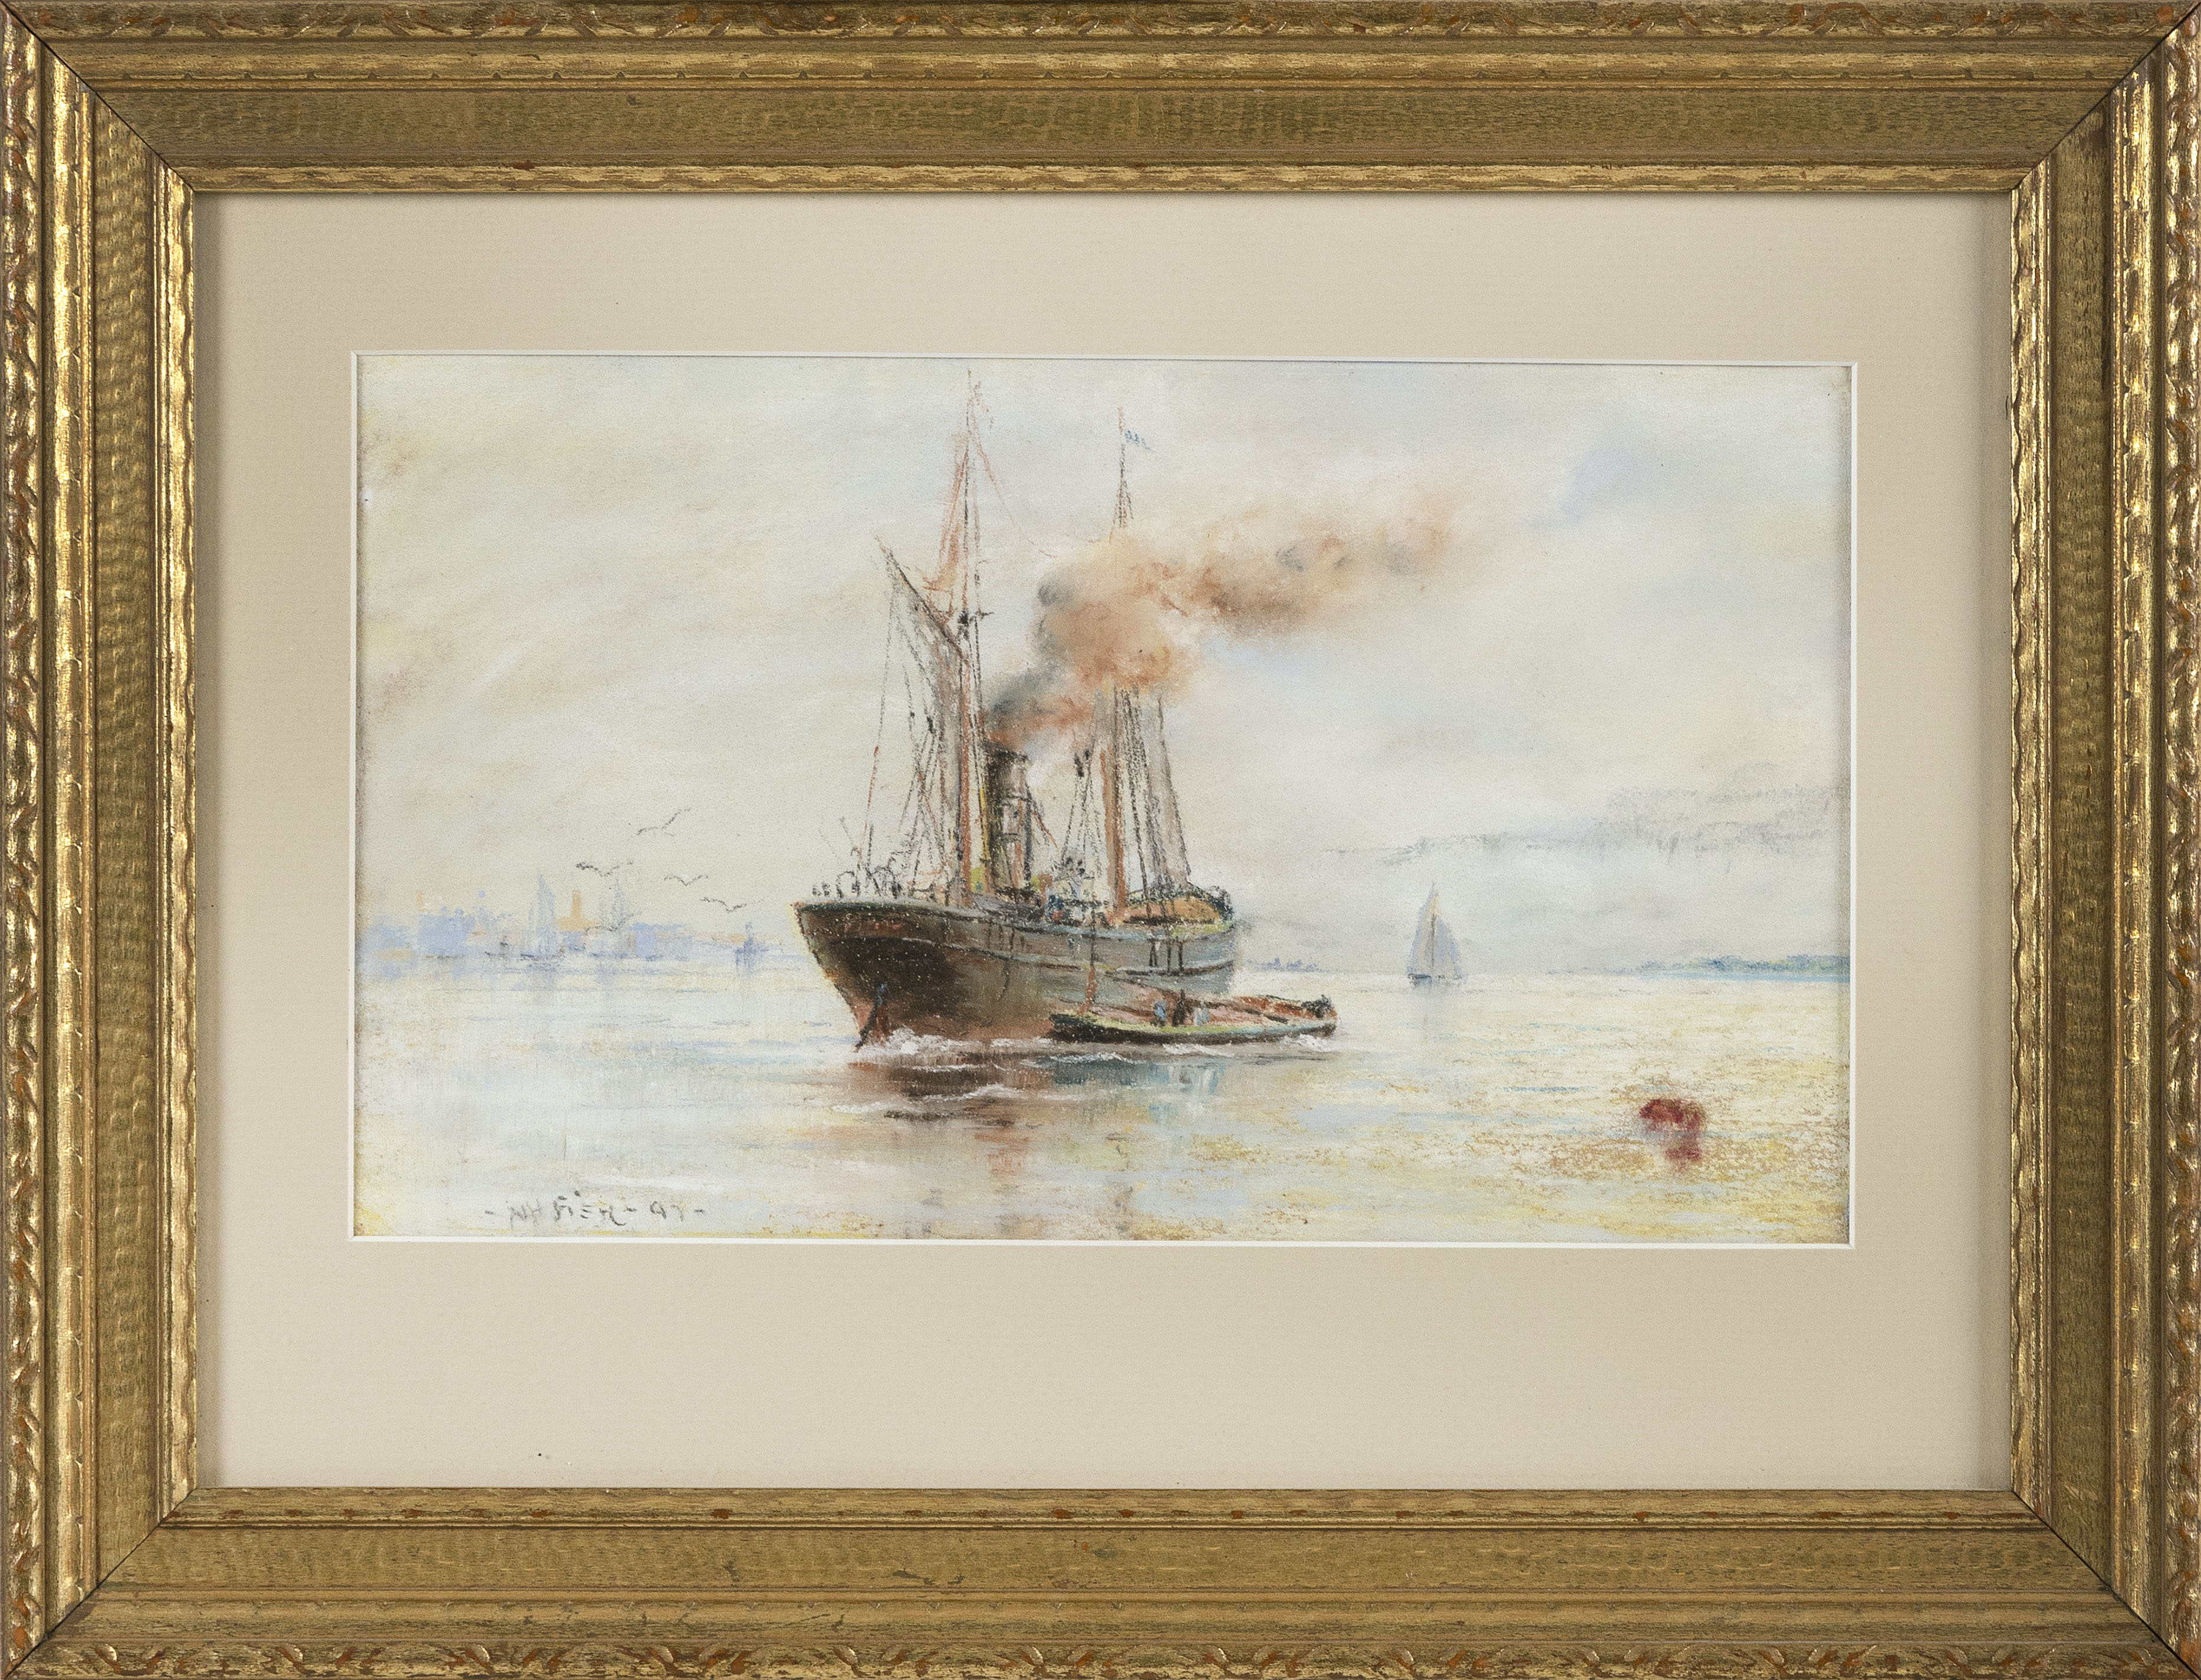 """MARITIME PAINTING OF A STEAM AND SAIL FRIGATE Late 19th Century Pastel on paper, 6.75"""" x 11.5"""" sight. Framed 13"""" x 17""""."""